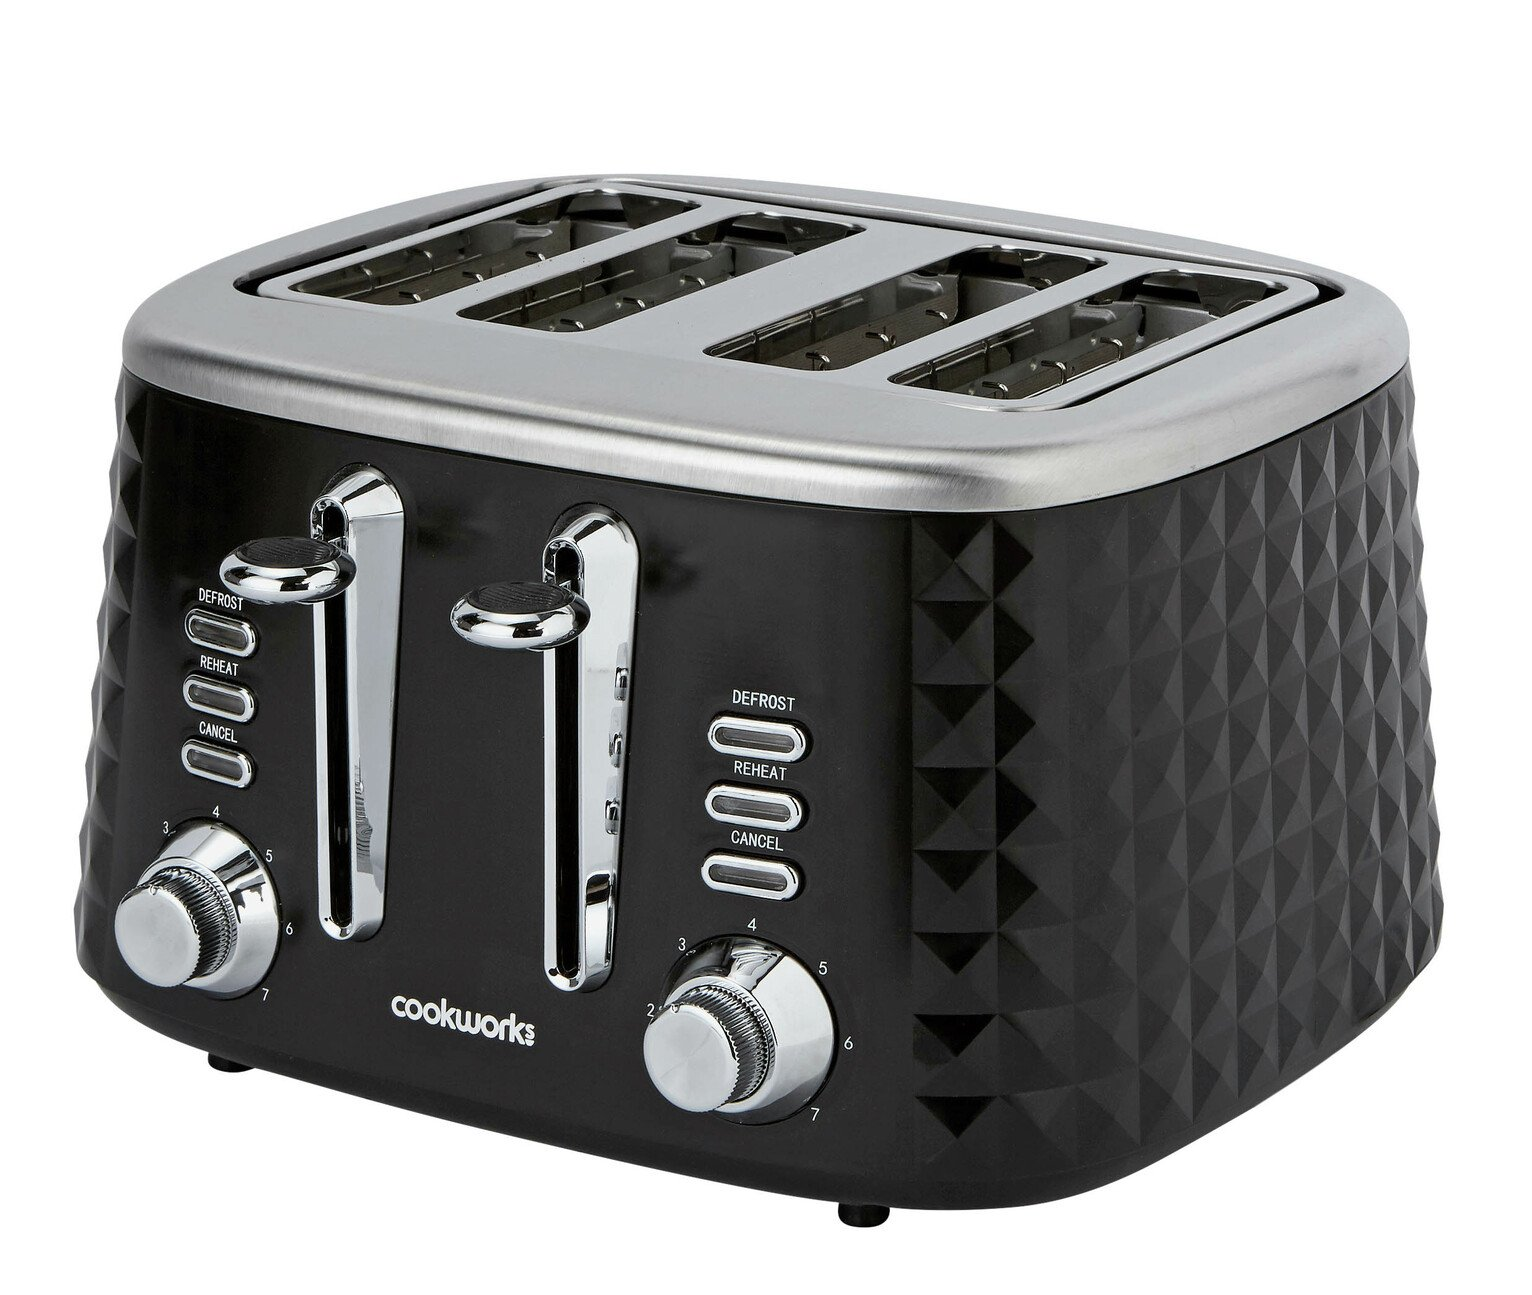 Cookworks Textured 4 Slice Toaster - Black